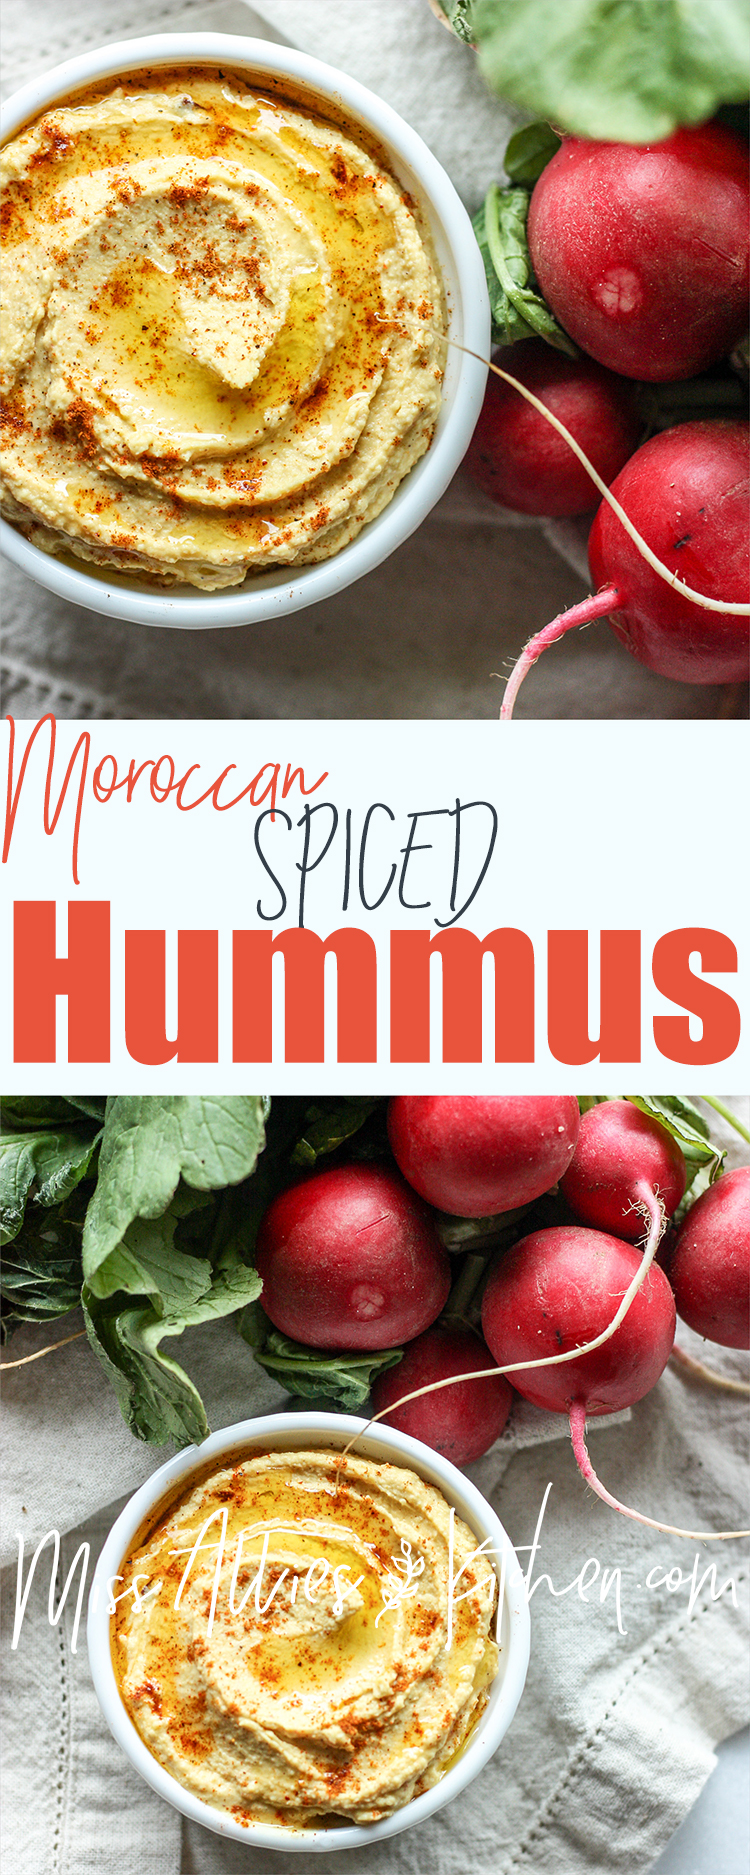 Moroccan Spiced Hummus made from scratch!